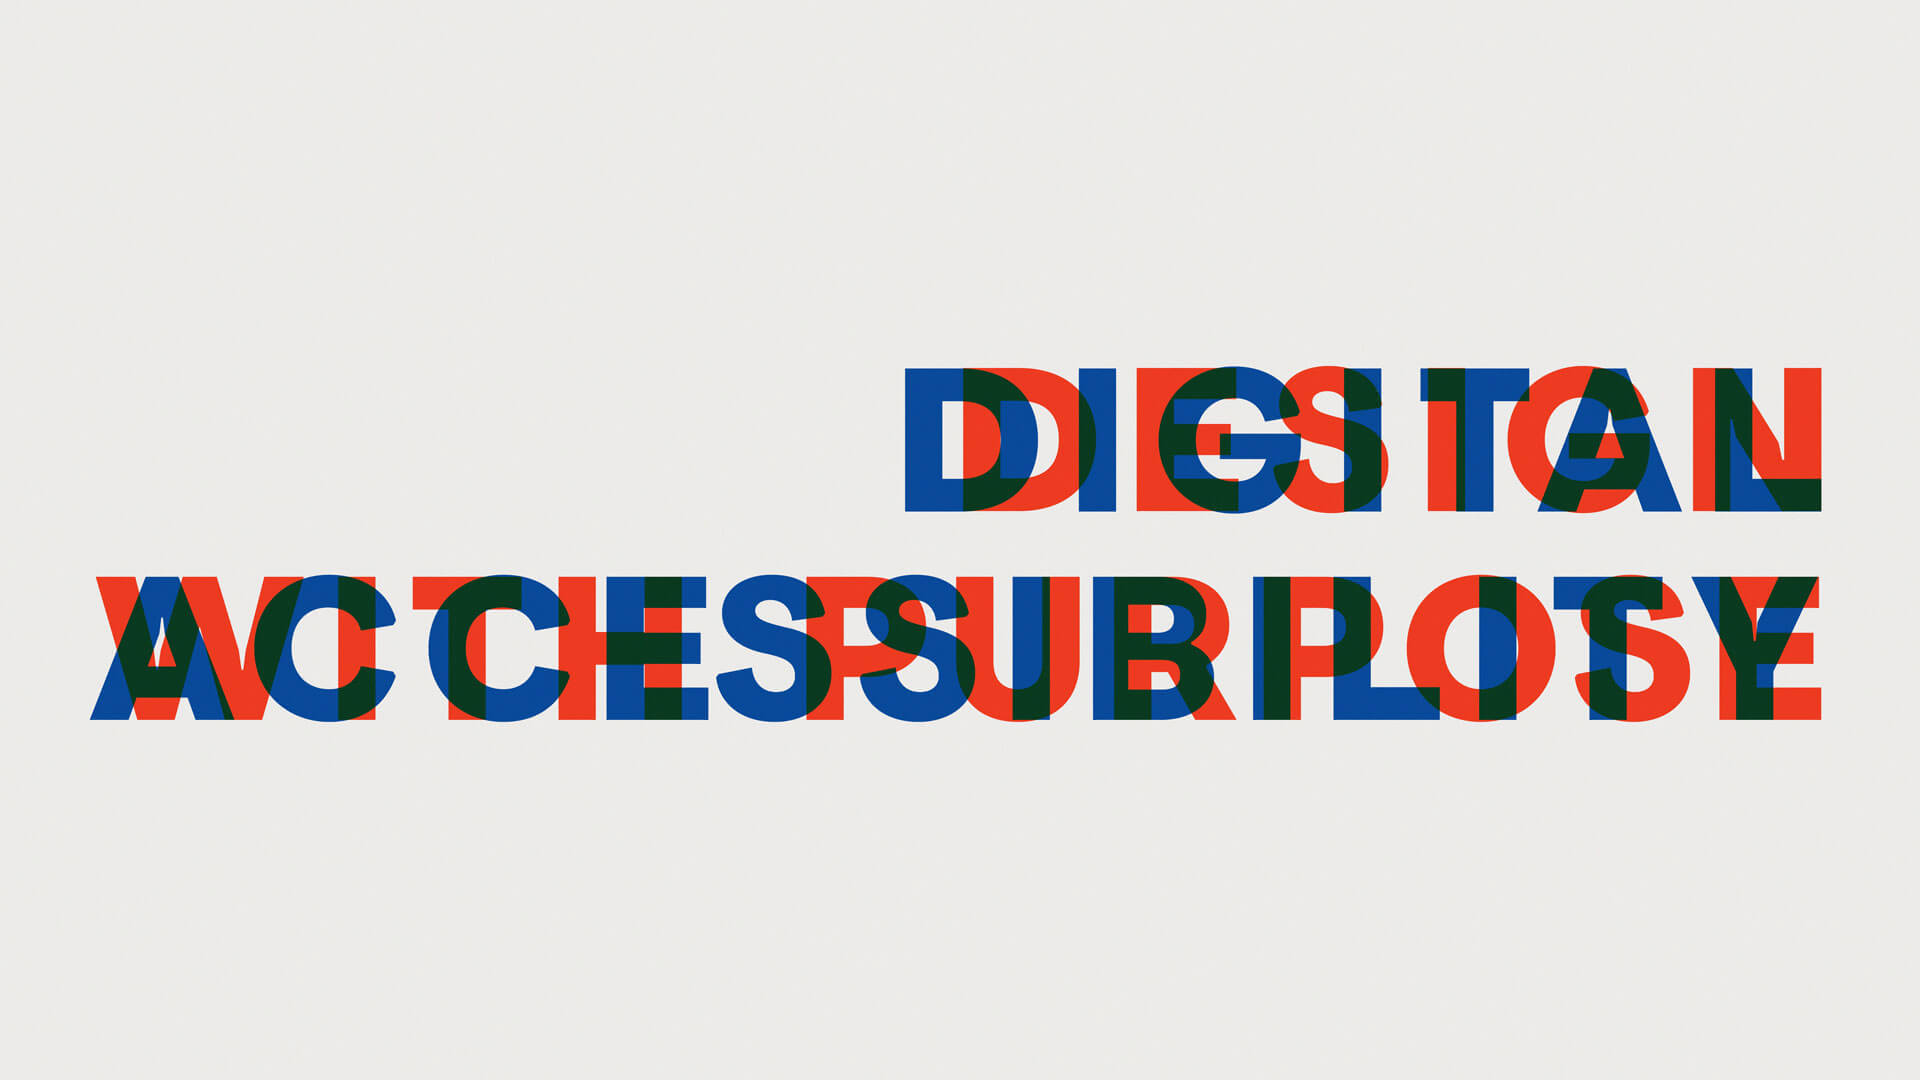 Digital accessibility, design with purpose